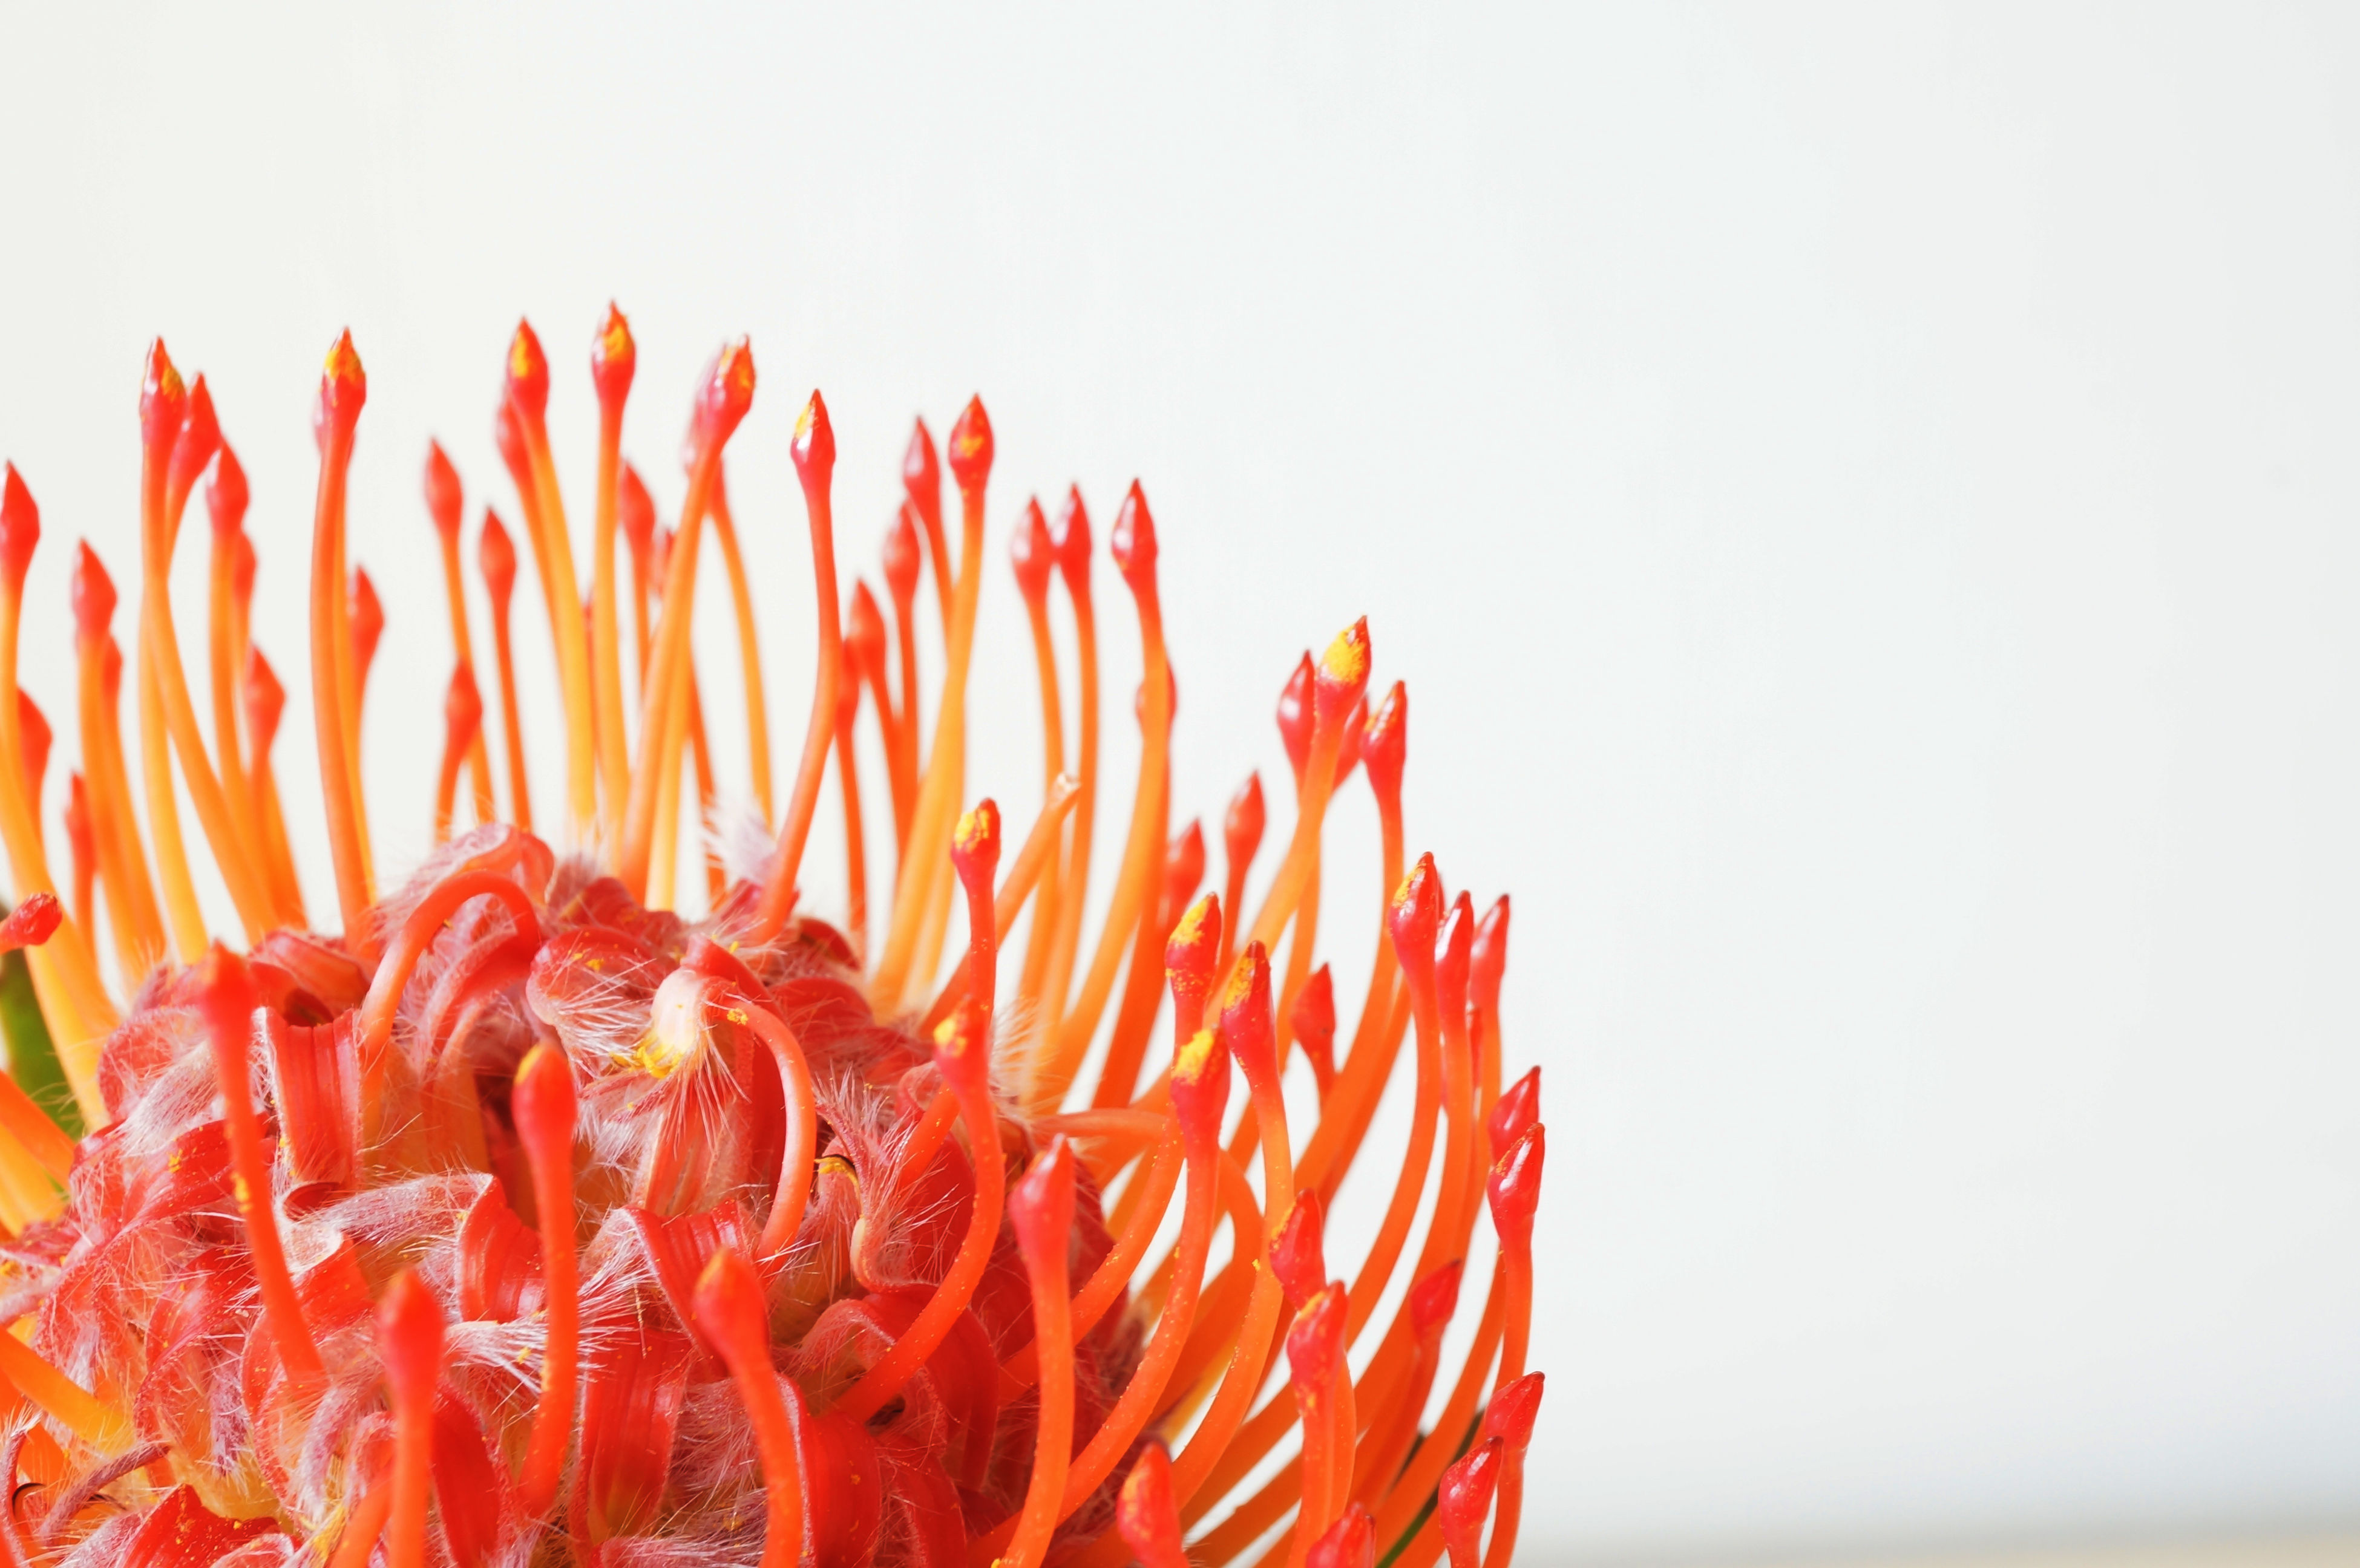 flower, petal, flower head, freshness, fragility, close-up, studio shot, red, single flower, beauty in nature, white background, growth, copy space, nature, clear sky, plant, pollen, blooming, no people, focus on foreground